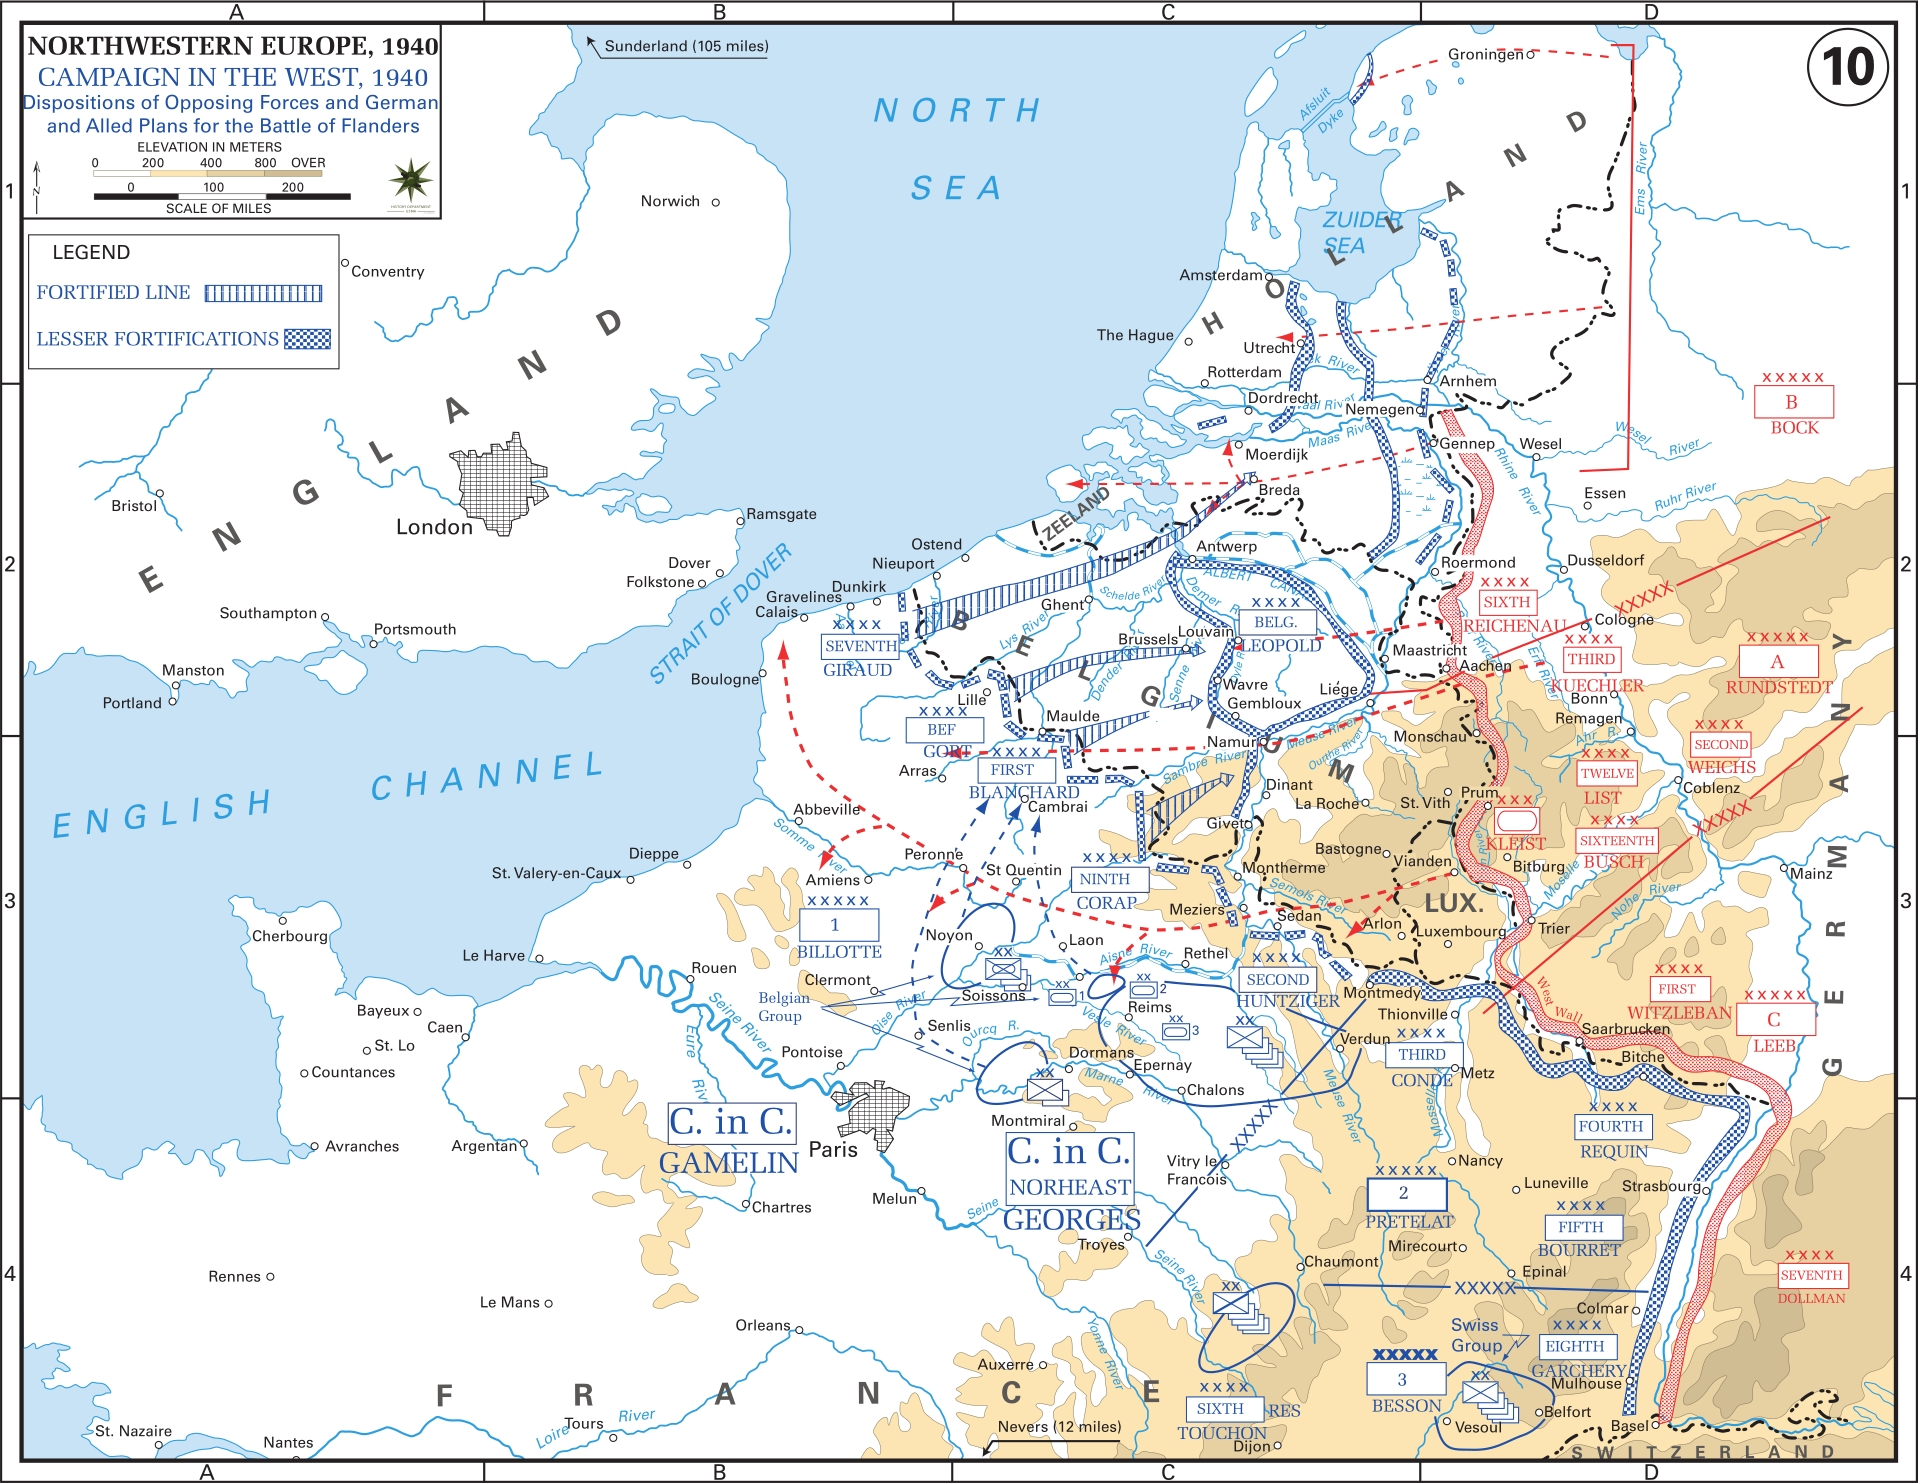 Western Front Maps Of World War Ii - Inflab - Medium pertaining to German Invasion Of Europe Map